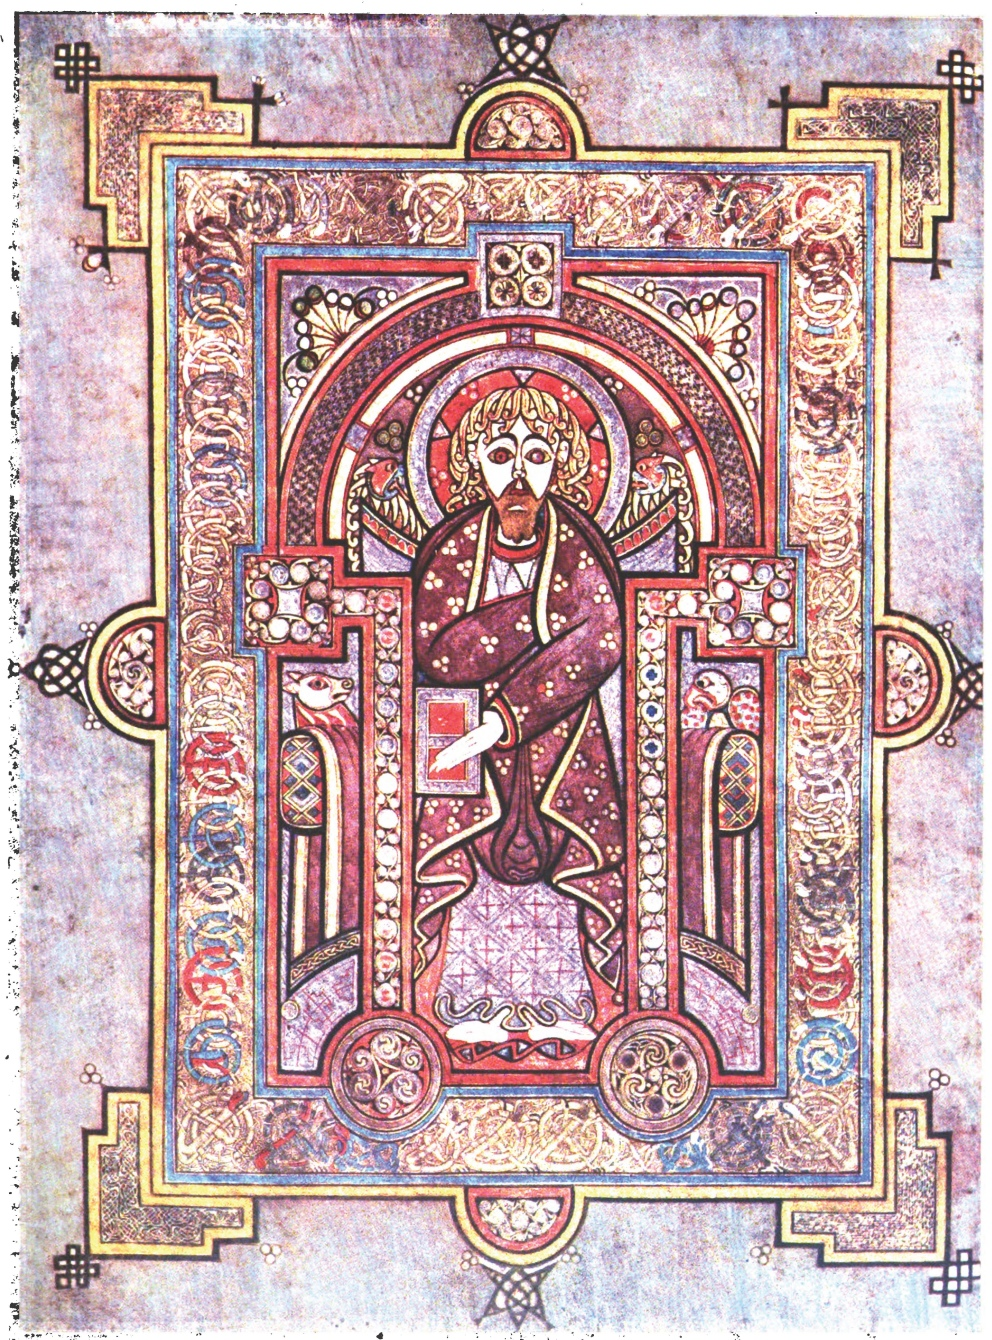 Irish Illuminated Art From The Early Medieval Period